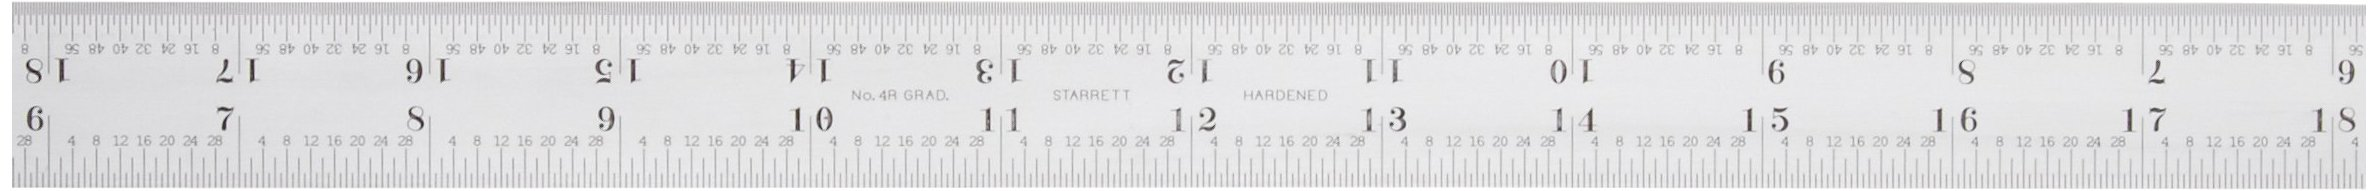 Starrett CB24-4R Combination Square Blade With Inch Graduations, Sets And Bevel Protractors, Satin Chrome Finish, 6R Graduation, 1'' Width, 3/32'' Thickness, 24'' Size